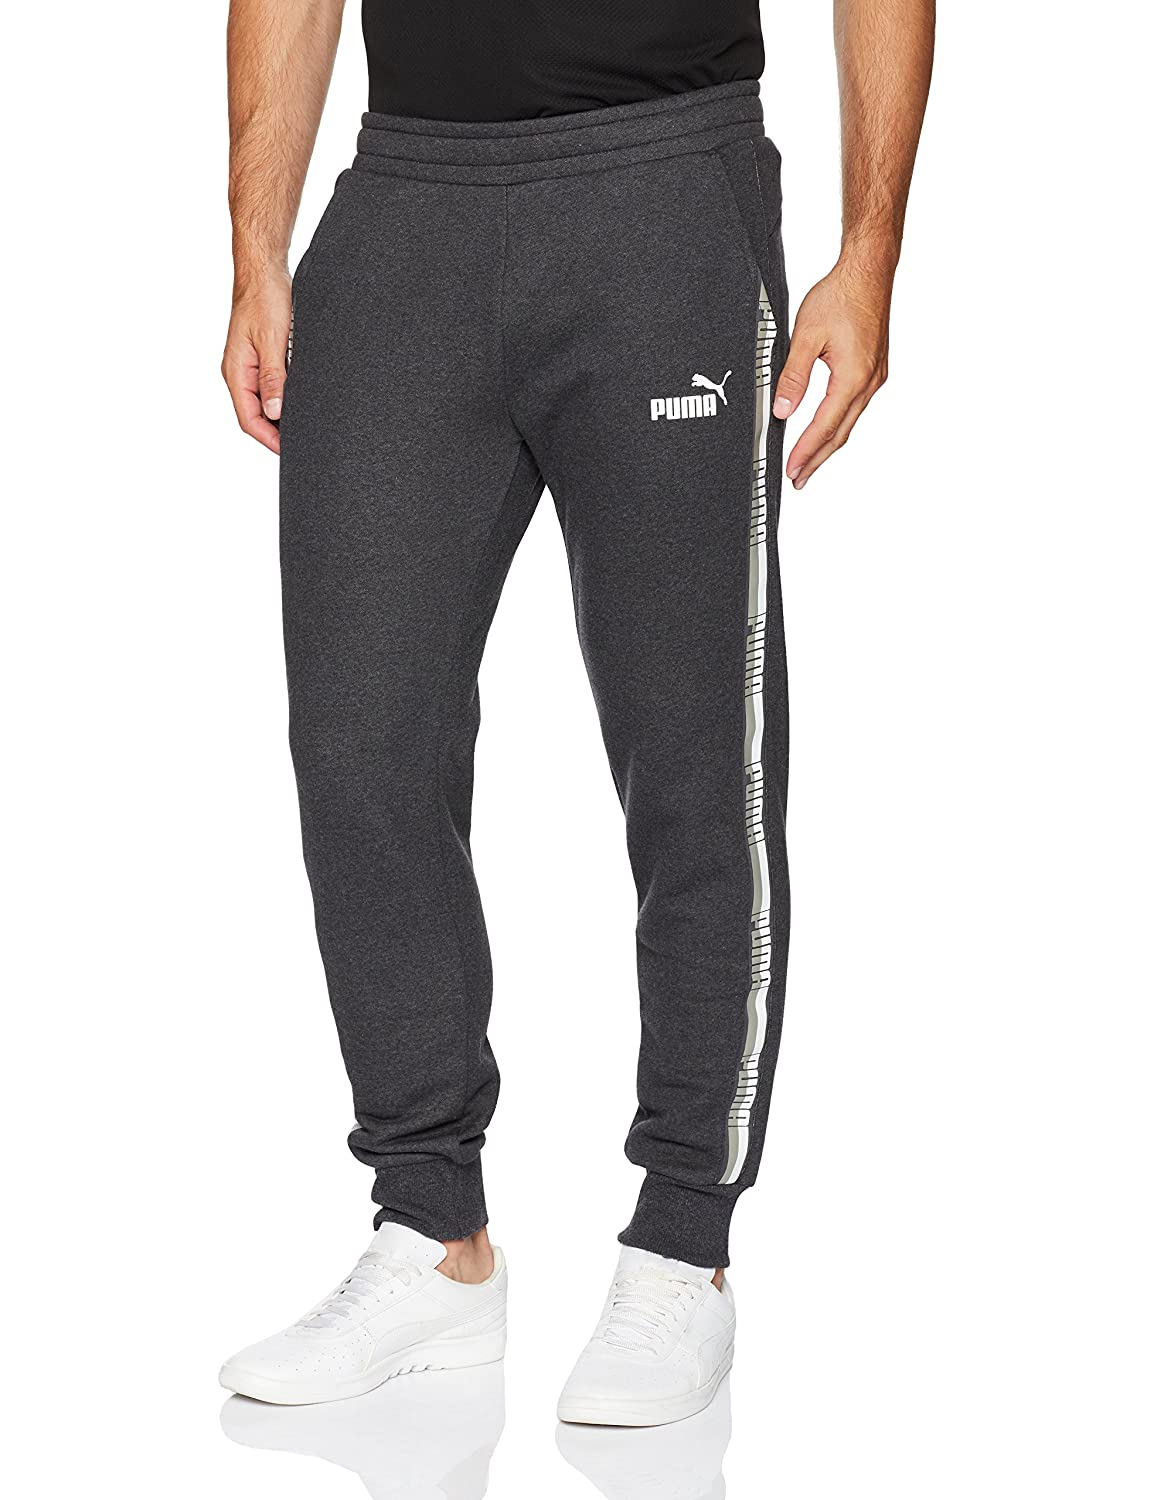 PUMA Mens Standard Tape Pants